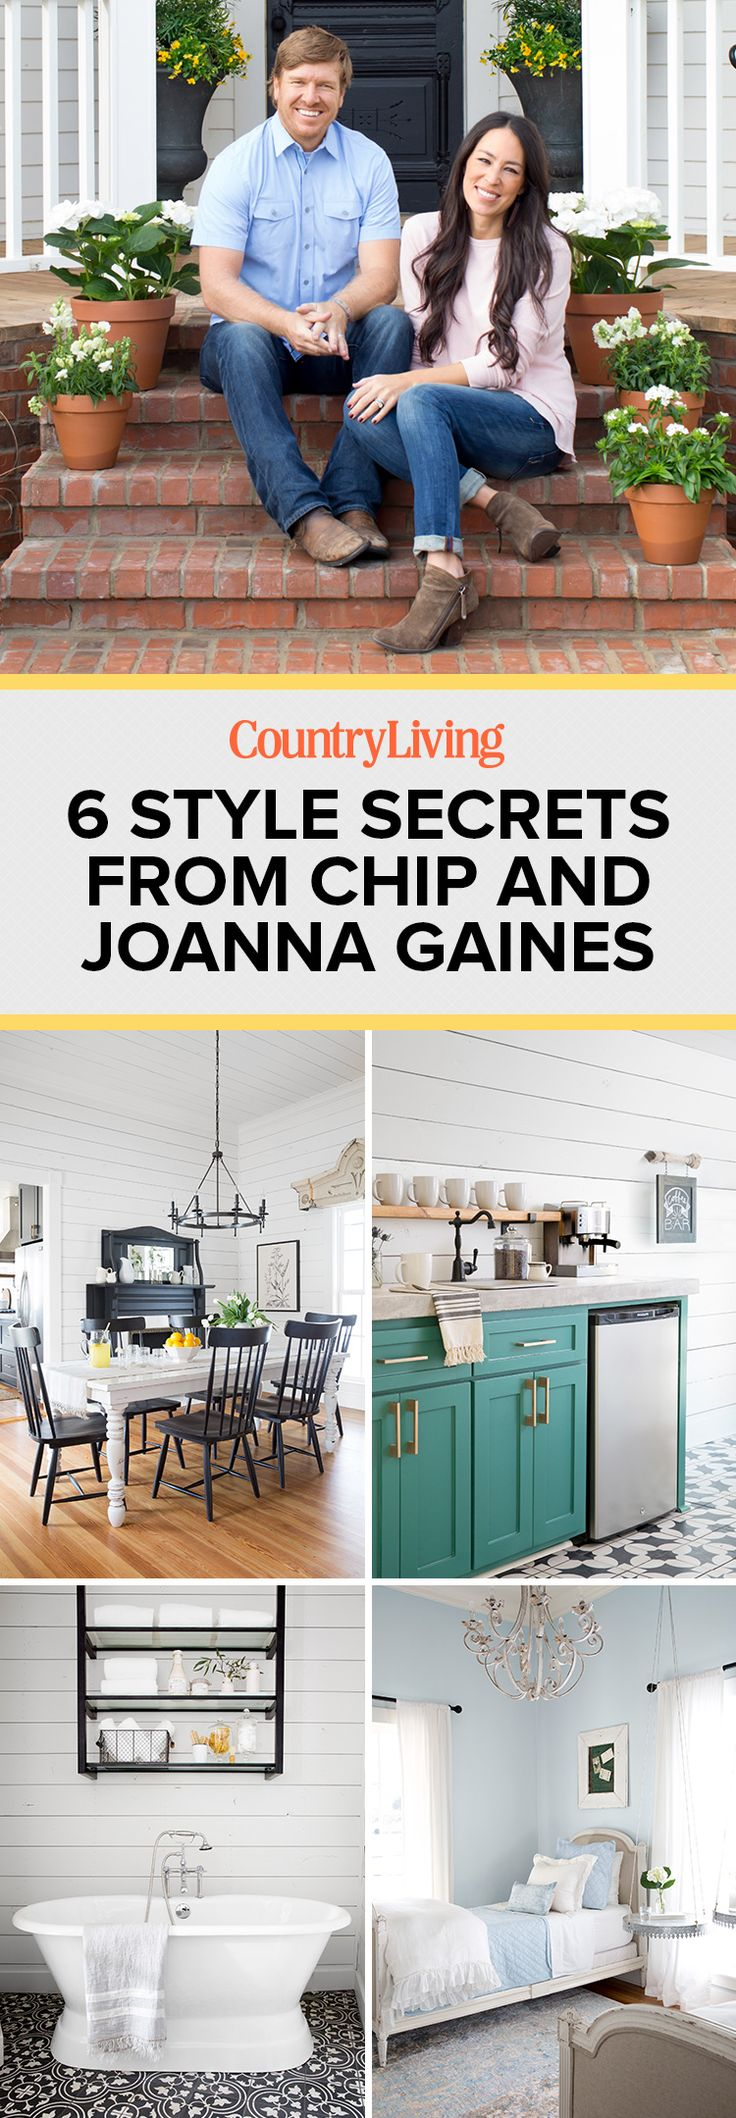 1000 images about fixer upper chip joanna on pinterest vintage decorating ideas and texas. Black Bedroom Furniture Sets. Home Design Ideas